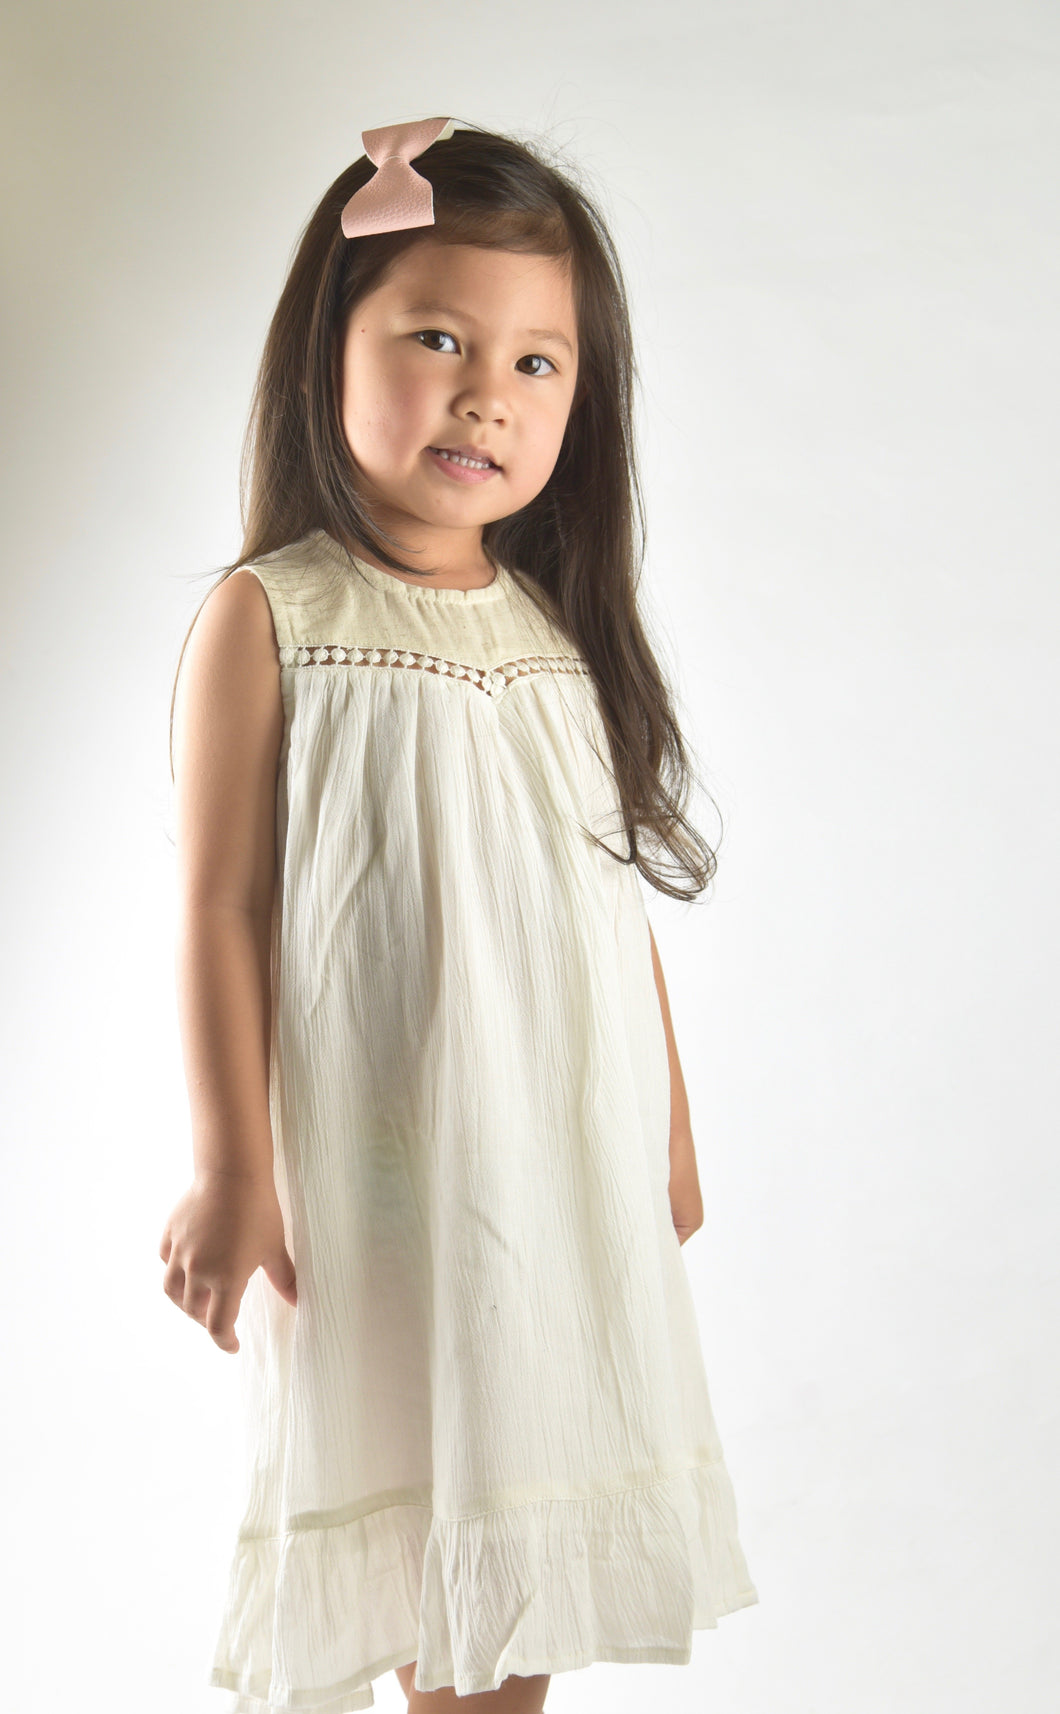 Off-white Lace Detail Dress - Kids Clothing, Dress - Girls Dress, Yo Baby Online - Yo Baby